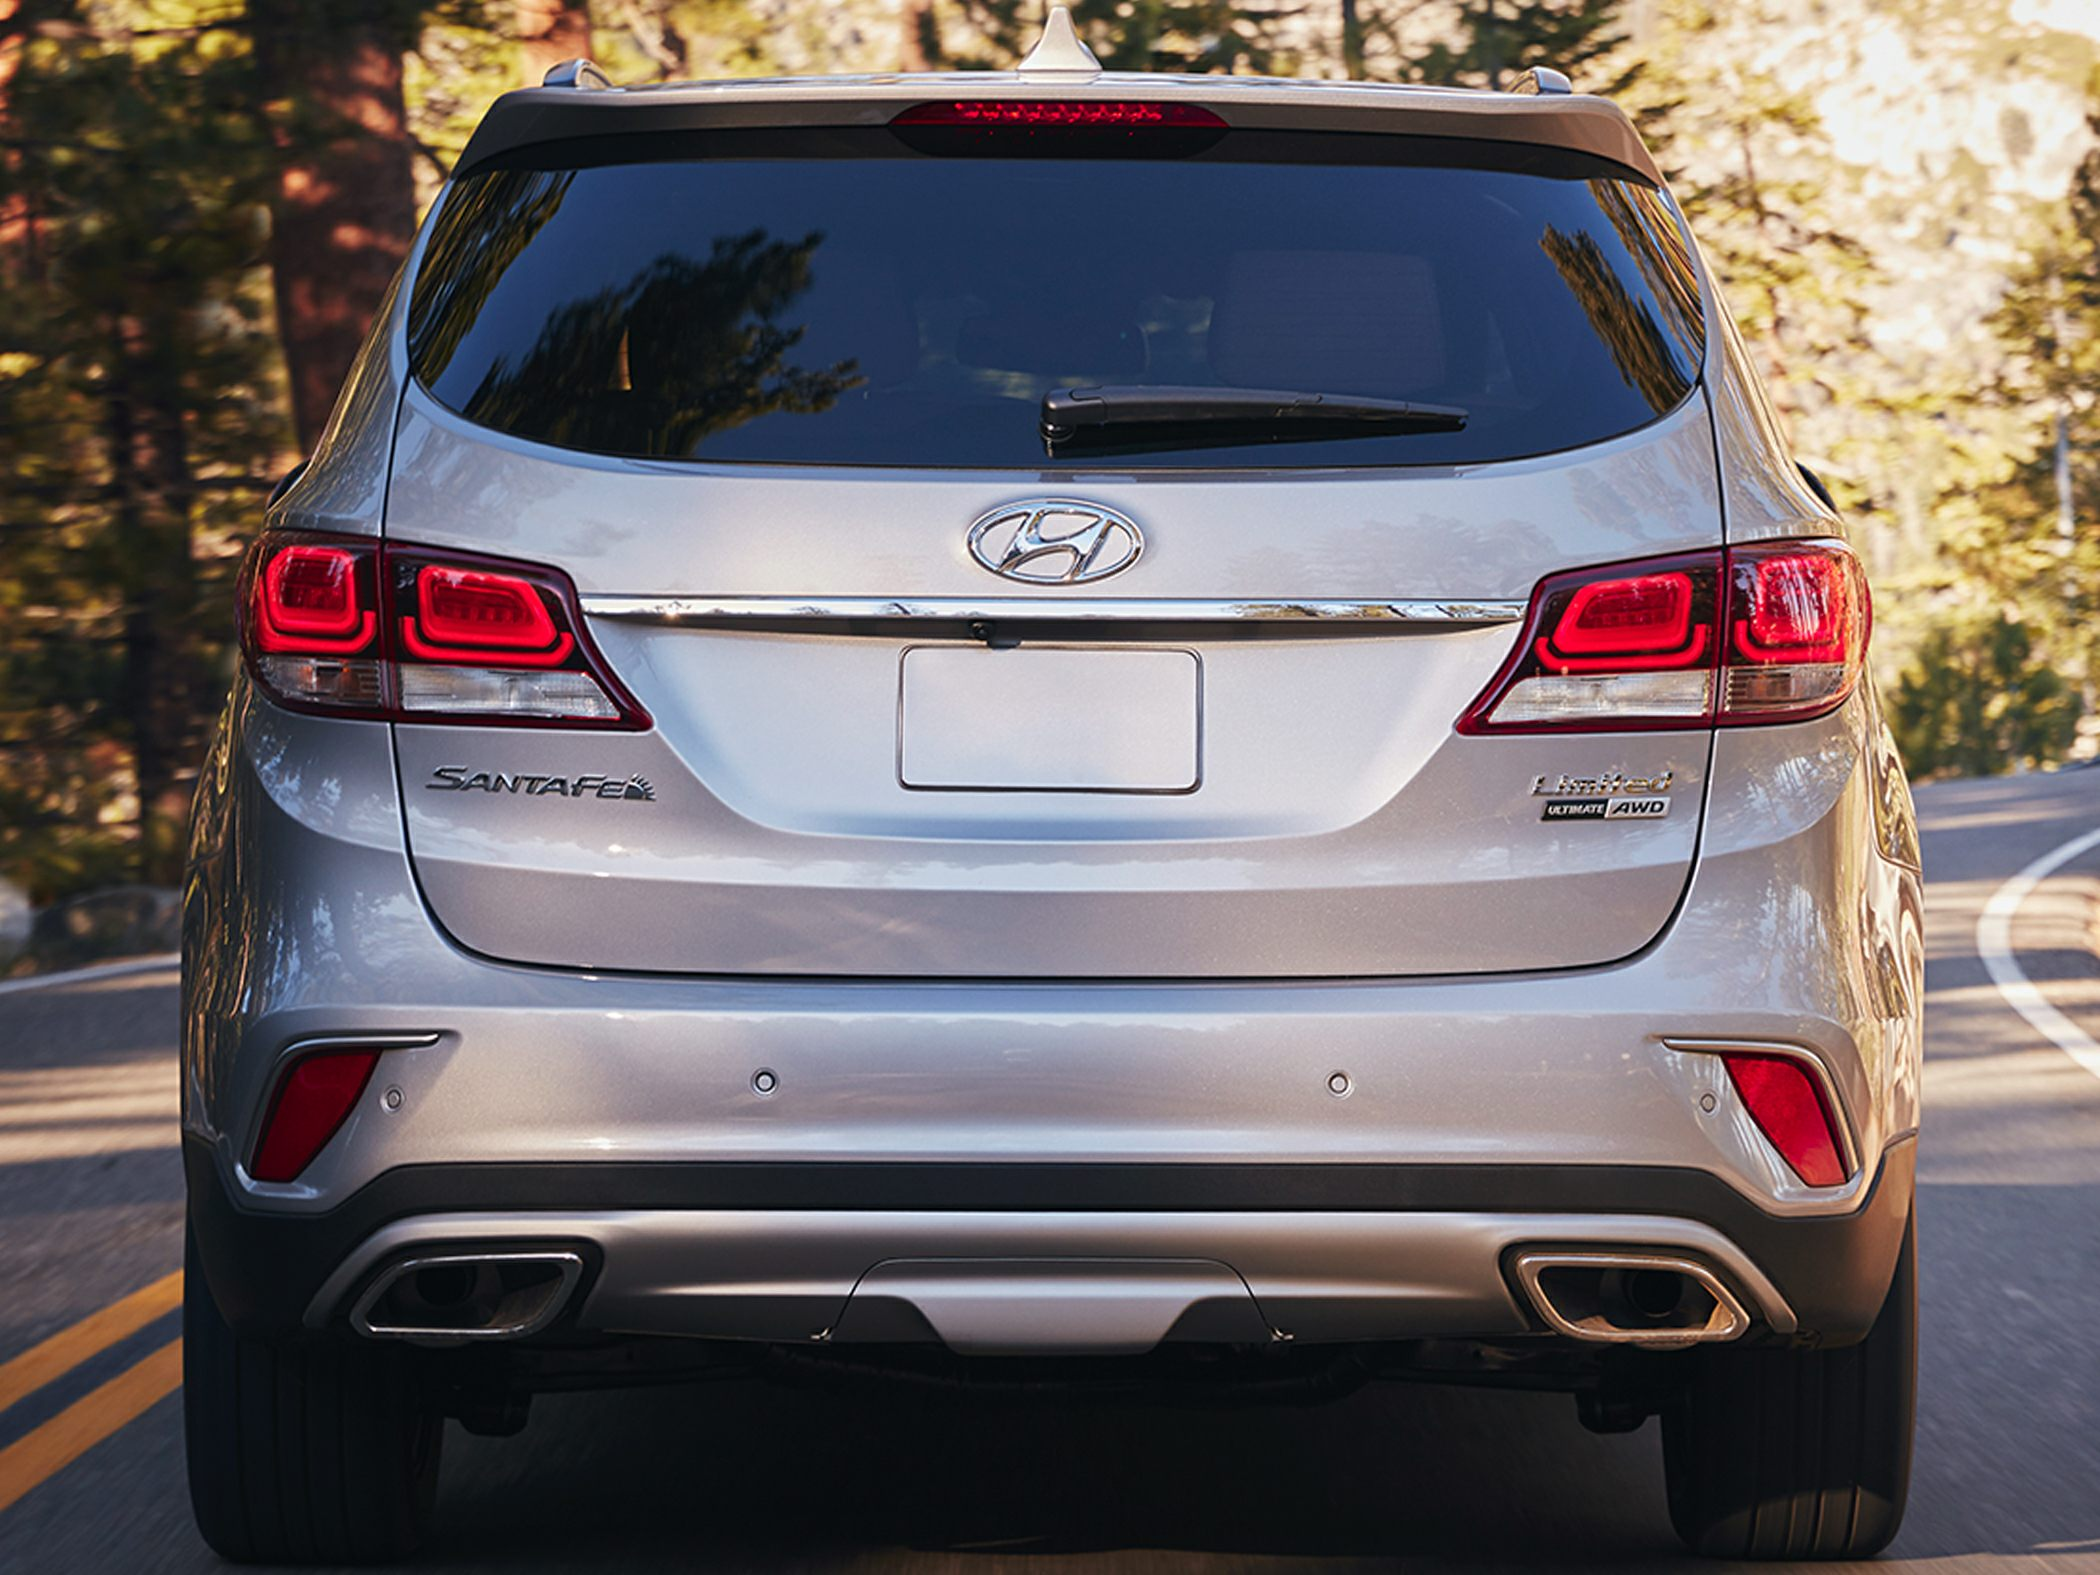 2017 hyundai santa fe deals prices incentives leases overview carsdirect. Black Bedroom Furniture Sets. Home Design Ideas